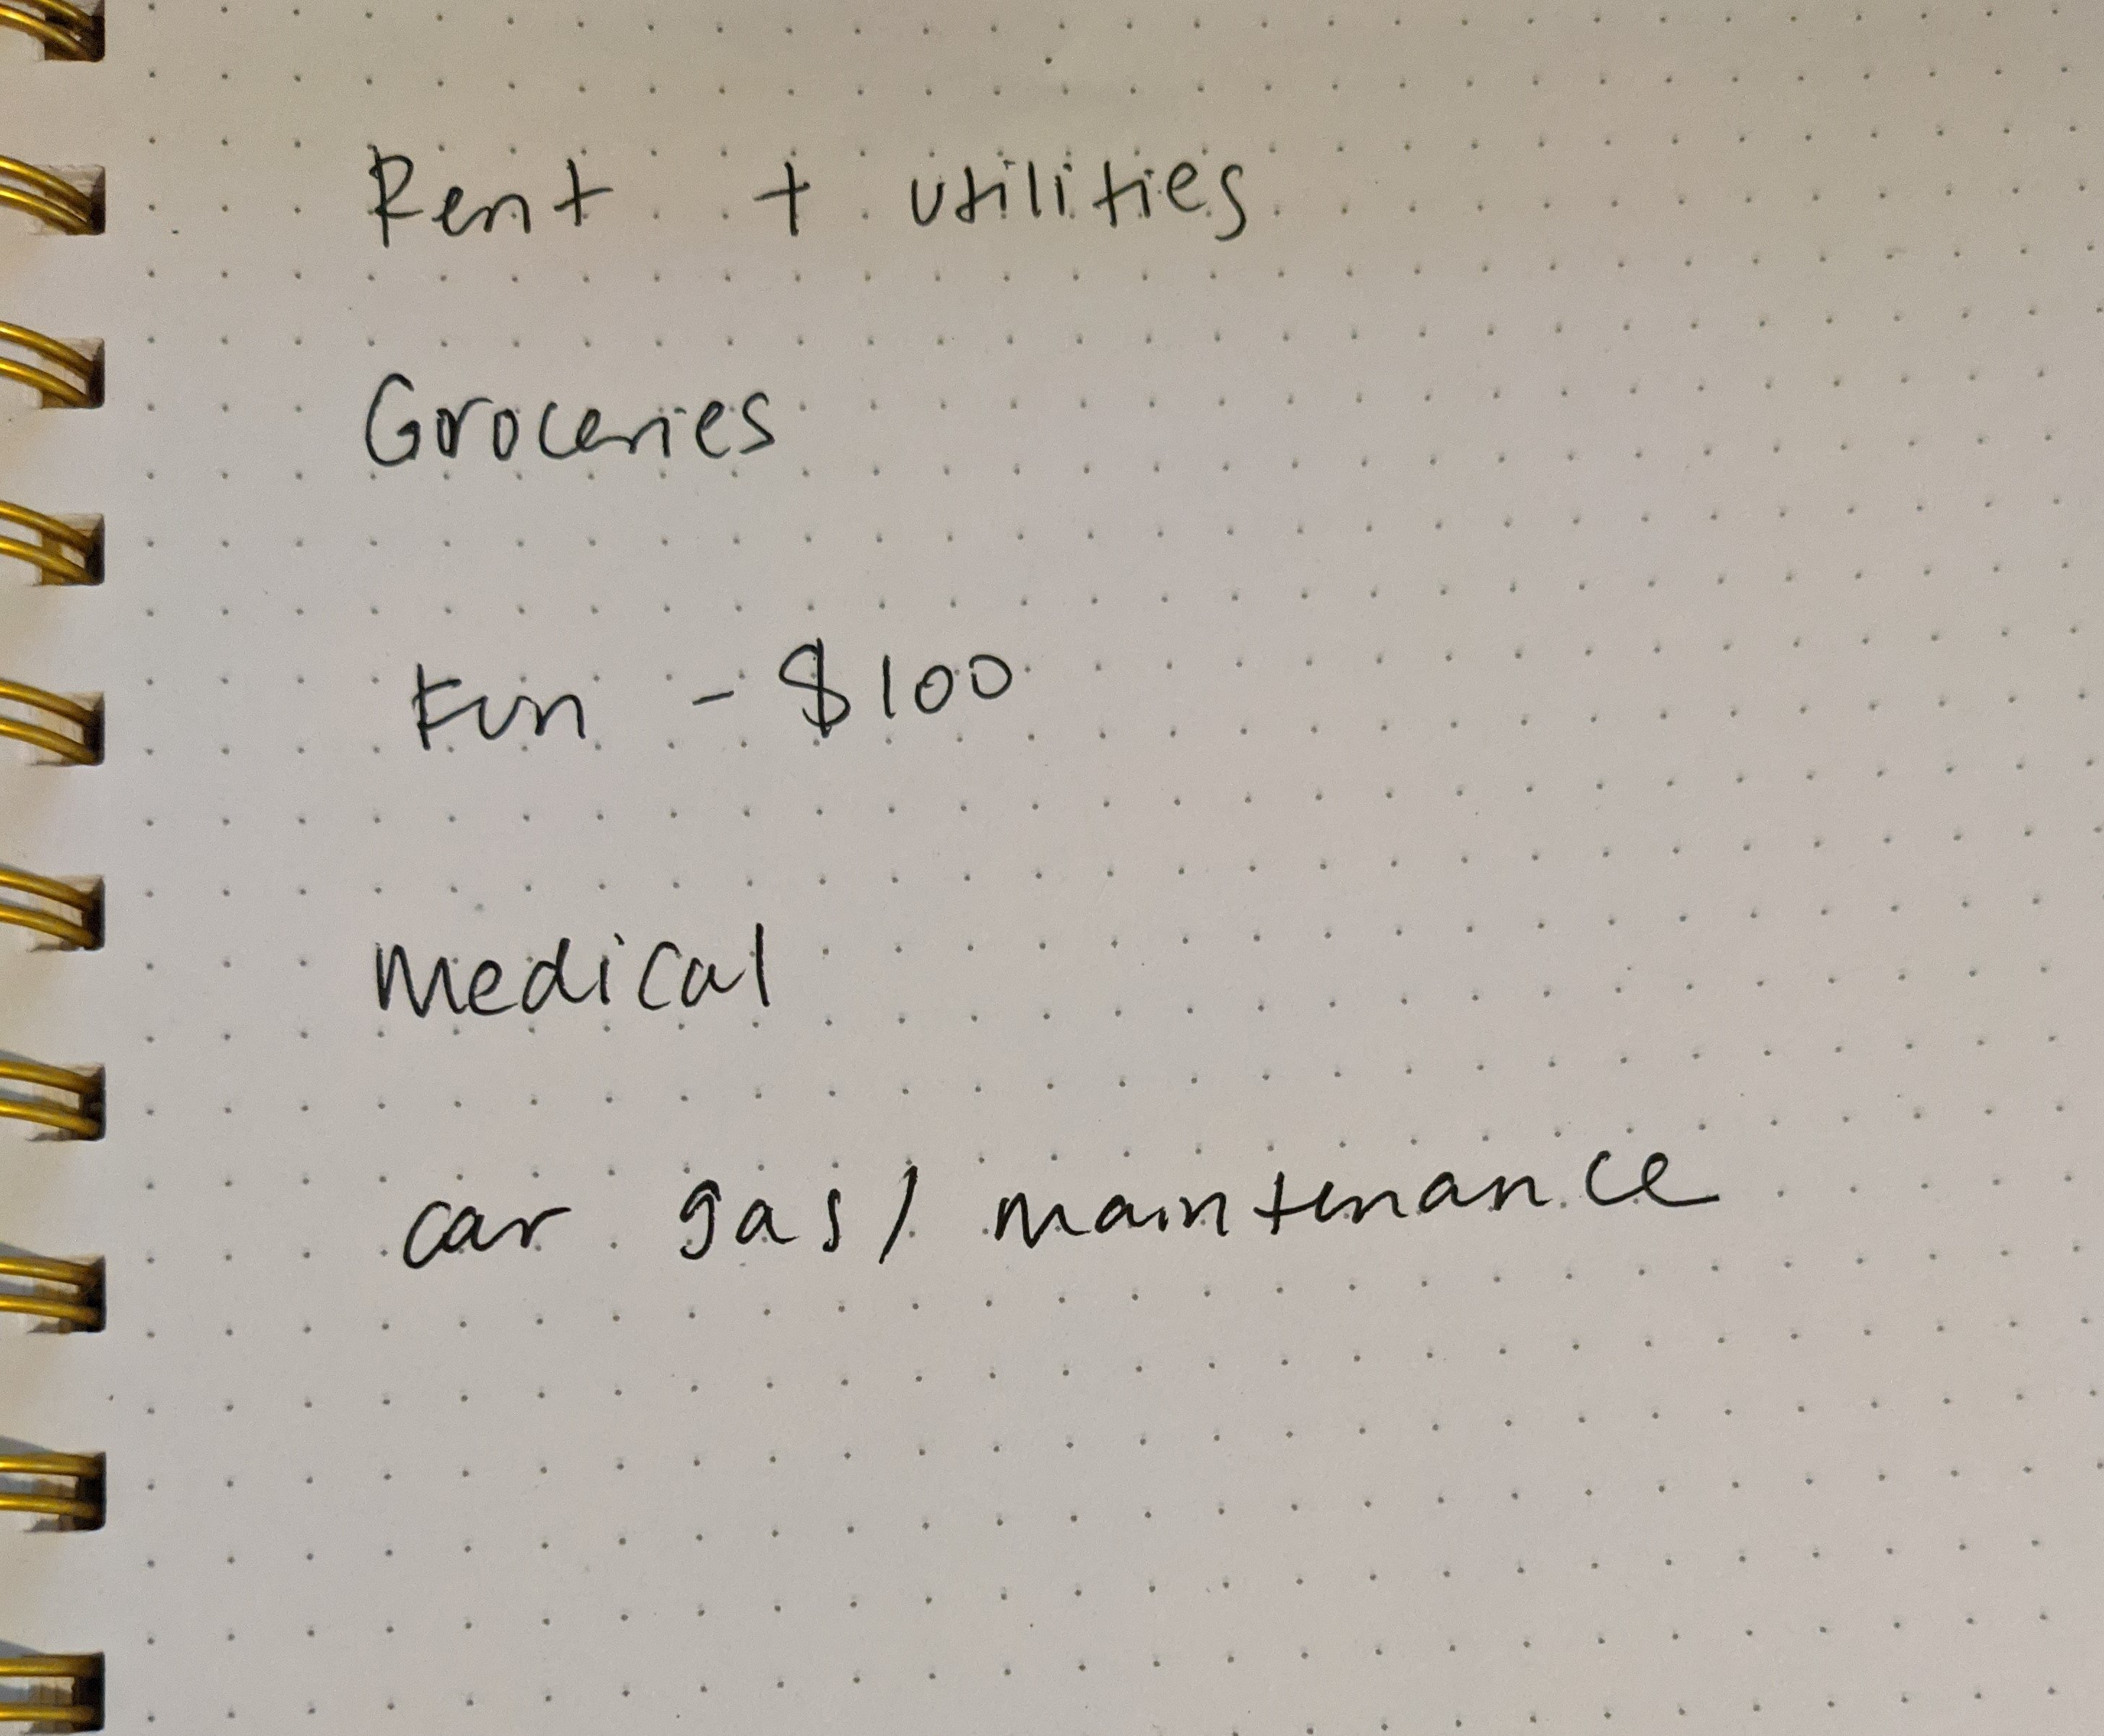 Bare-bones budget listing rent and utilities, groceries, medical, transportation, and a $100 fun budget